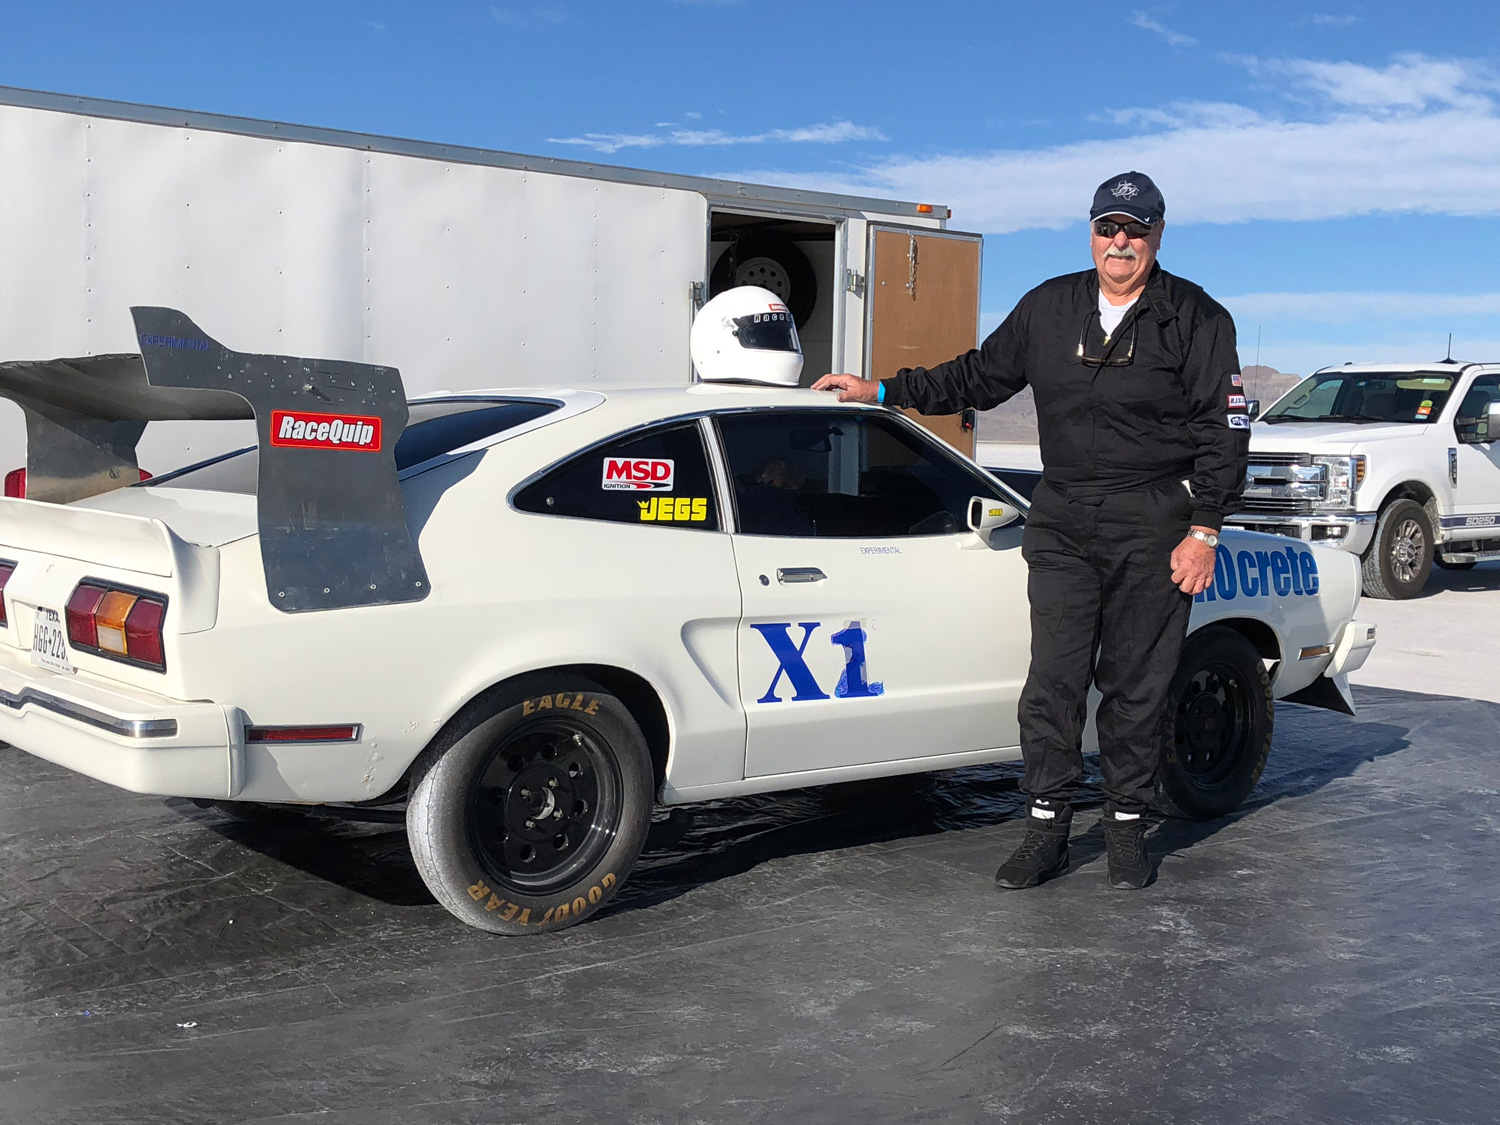 Taming the wind with a land-speed-racing Mustang II thumbnail